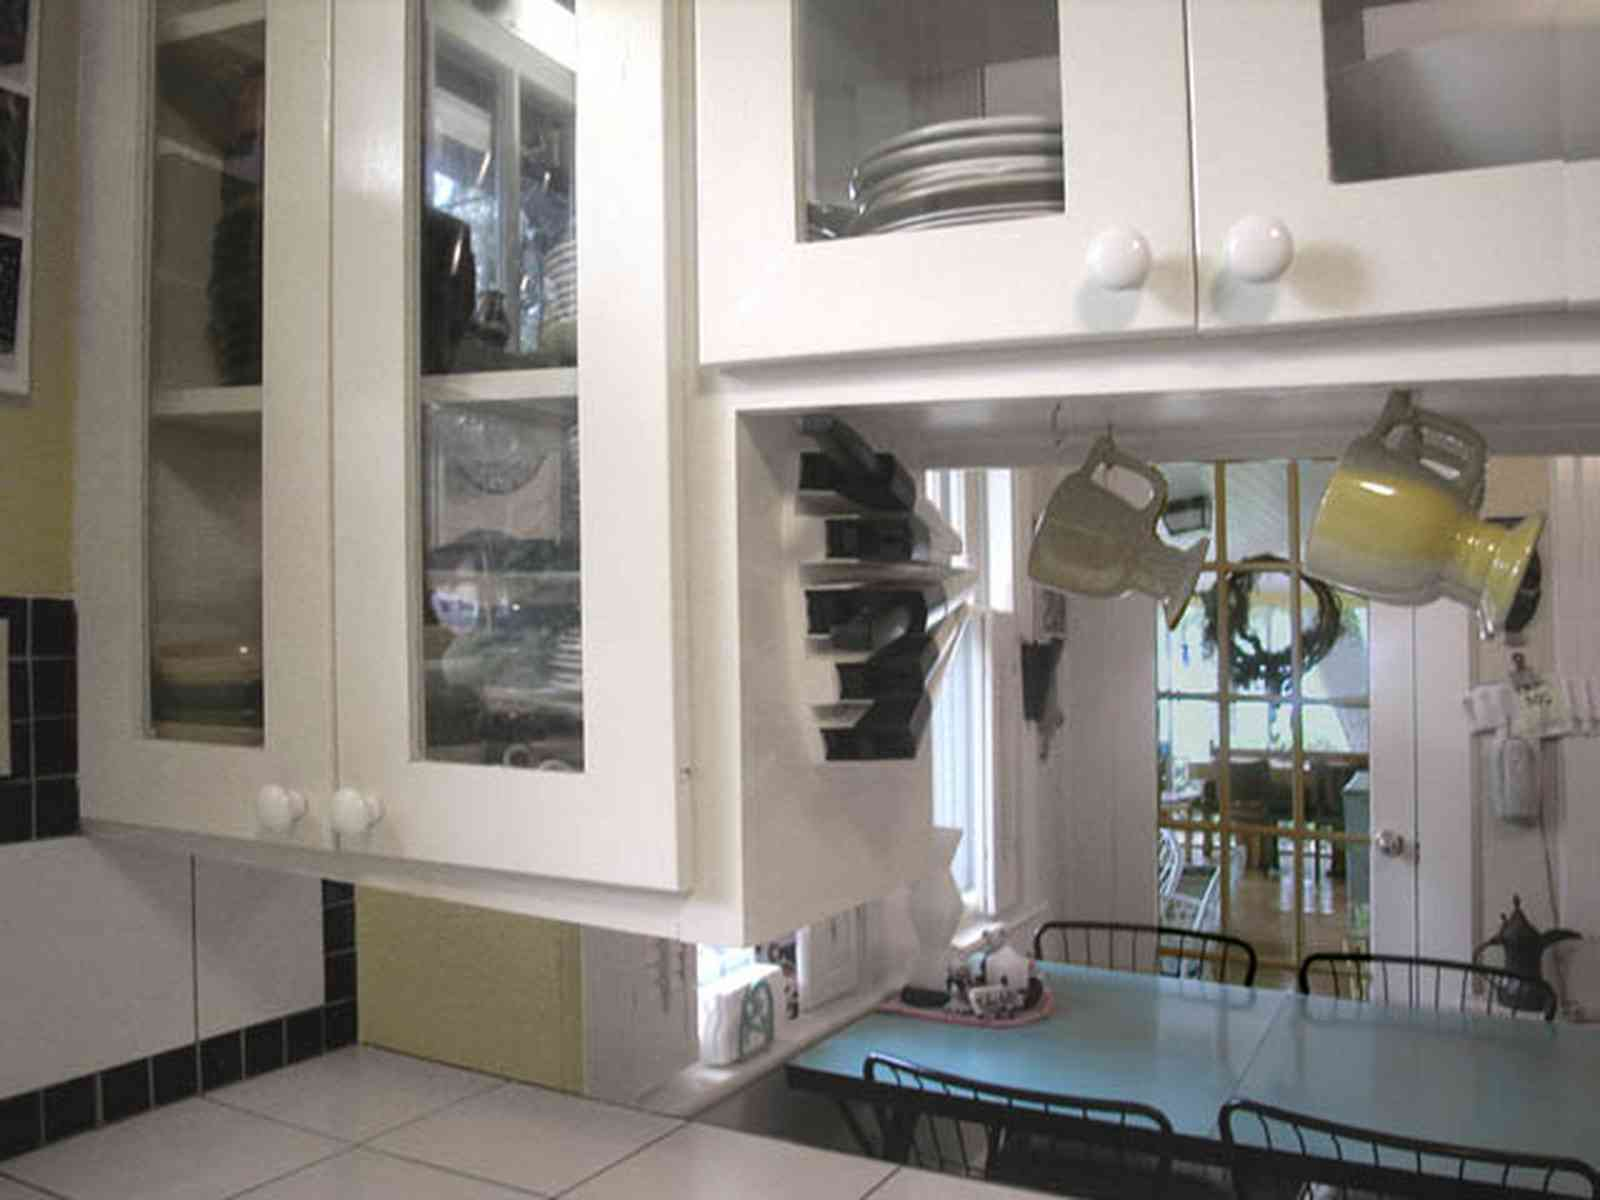 East-Pensacola-Heights:-600-Bayou-Blvd_15.jpg:  glass front cabinets, kitchen, dining area, hanging cups, ceramic tile countertops, screened porch